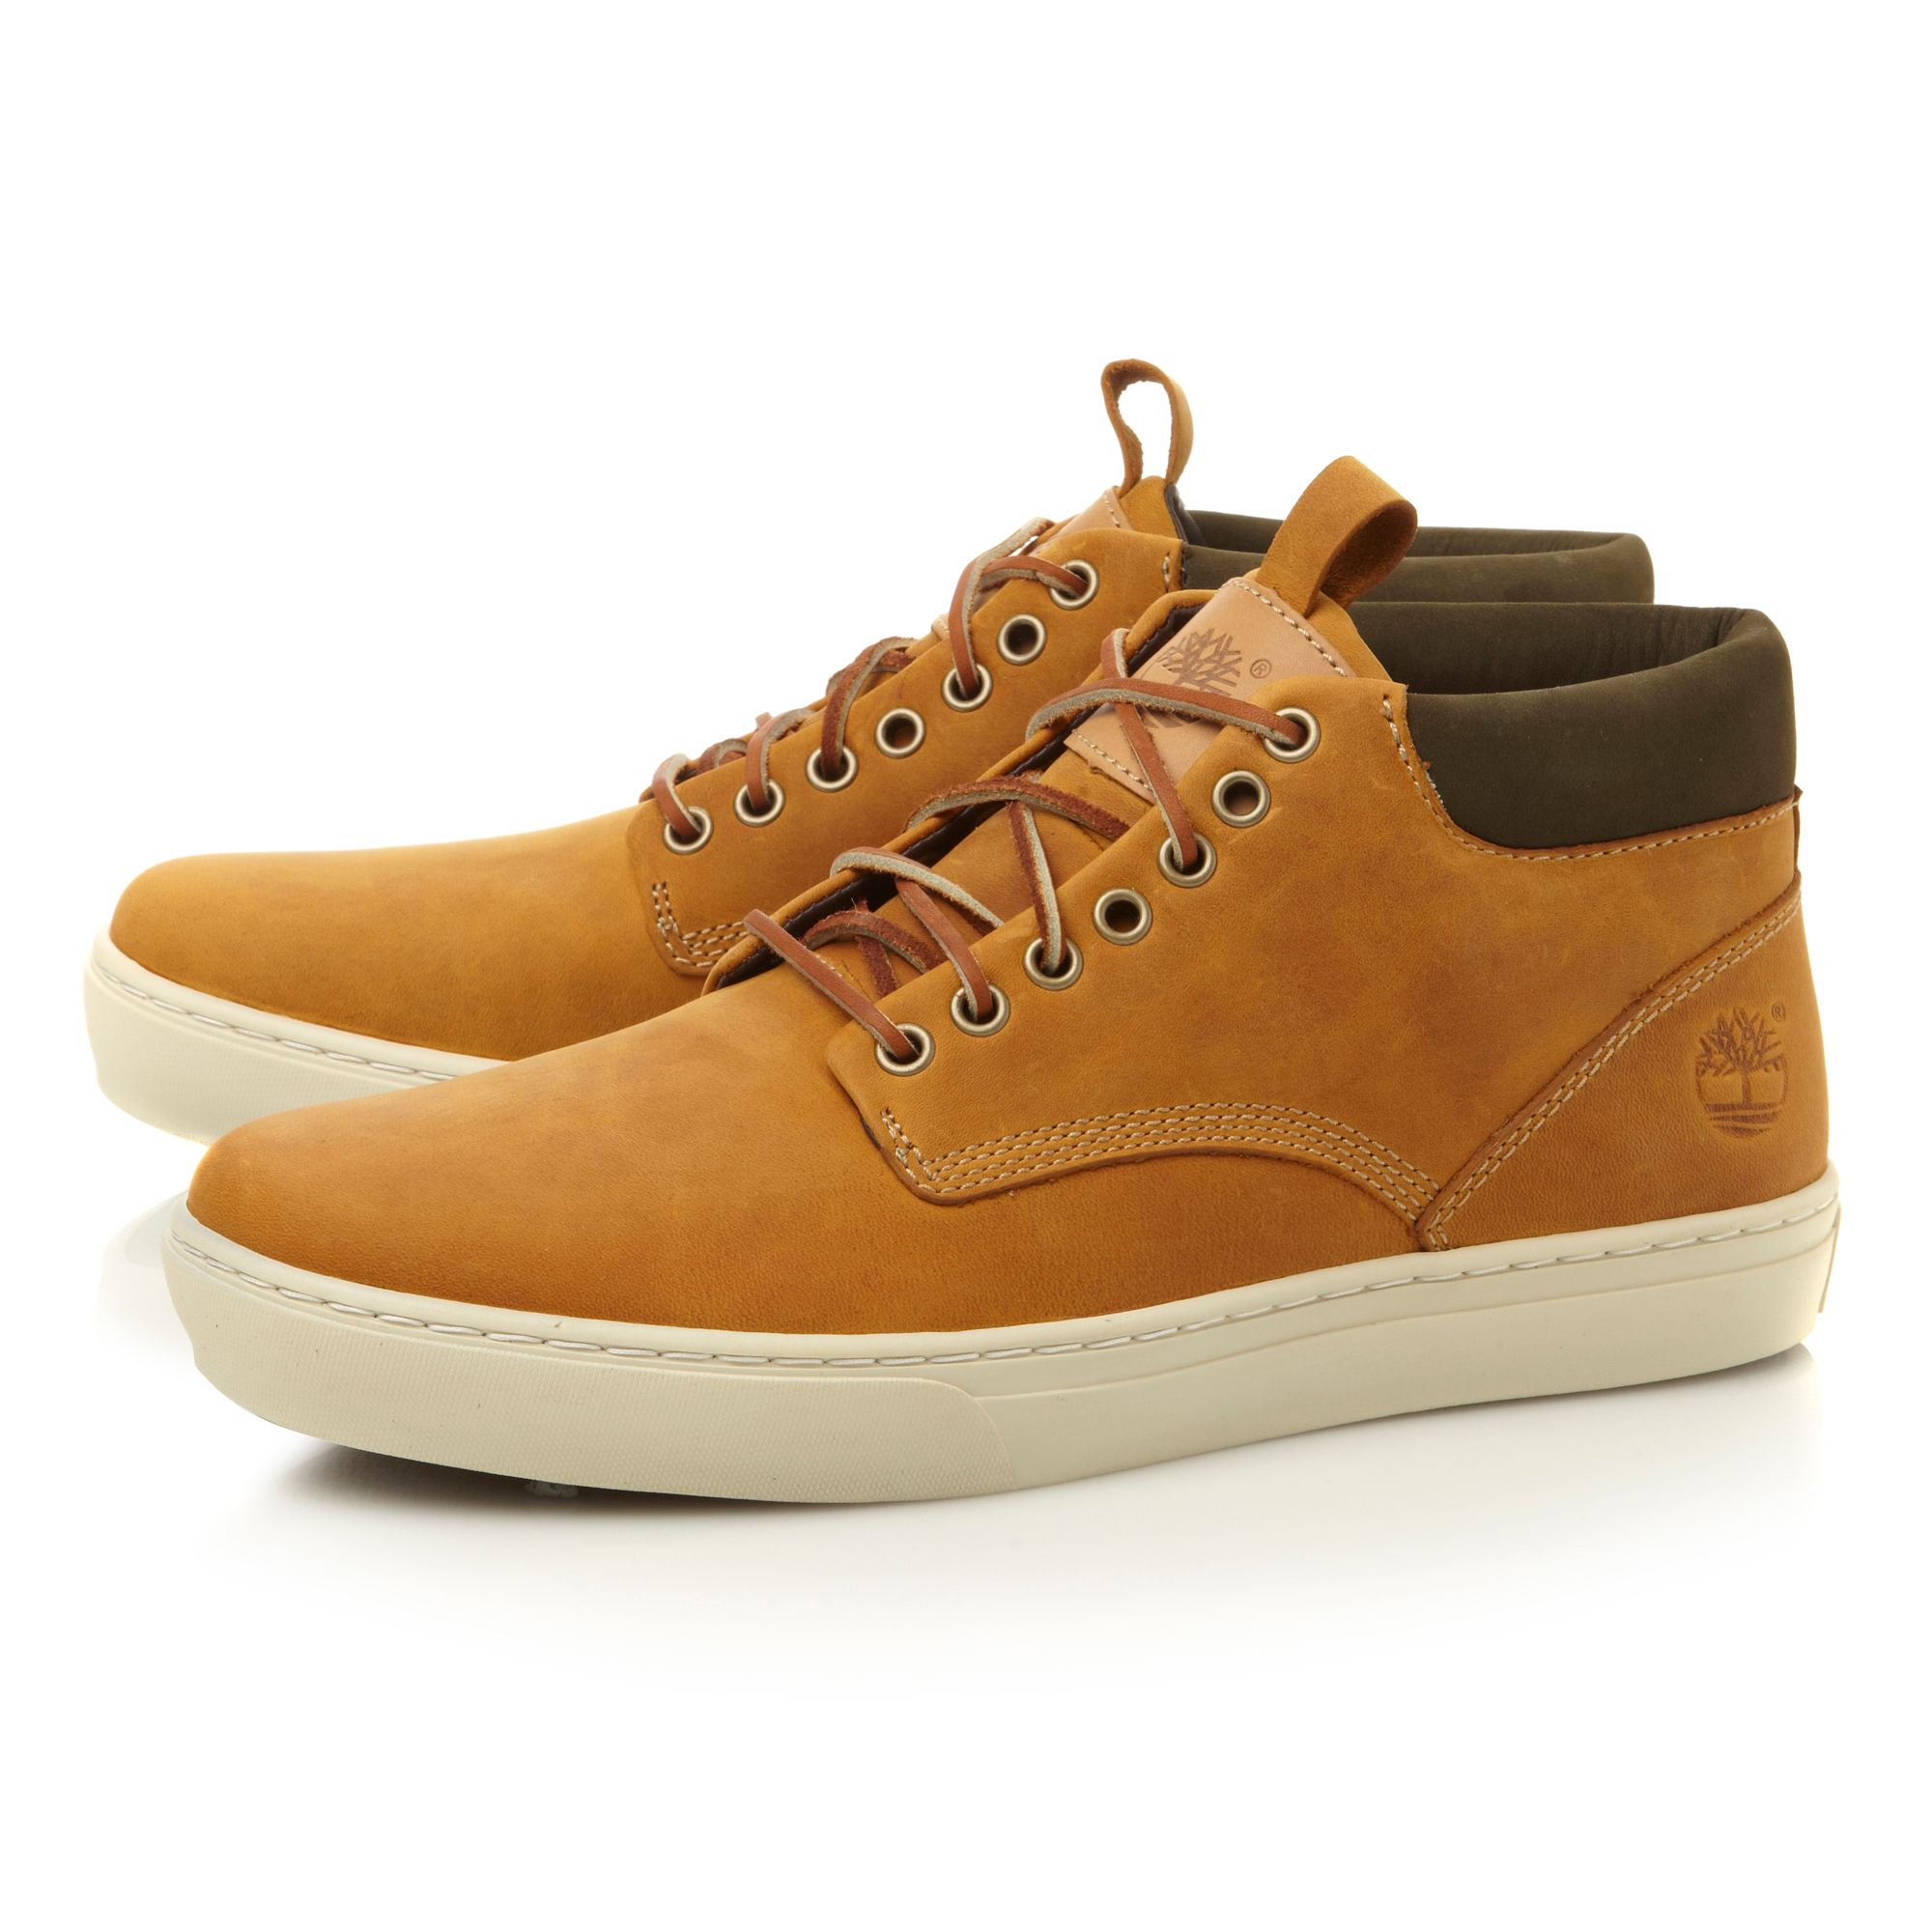 5344r lace up cupsole chukka booty hi tops